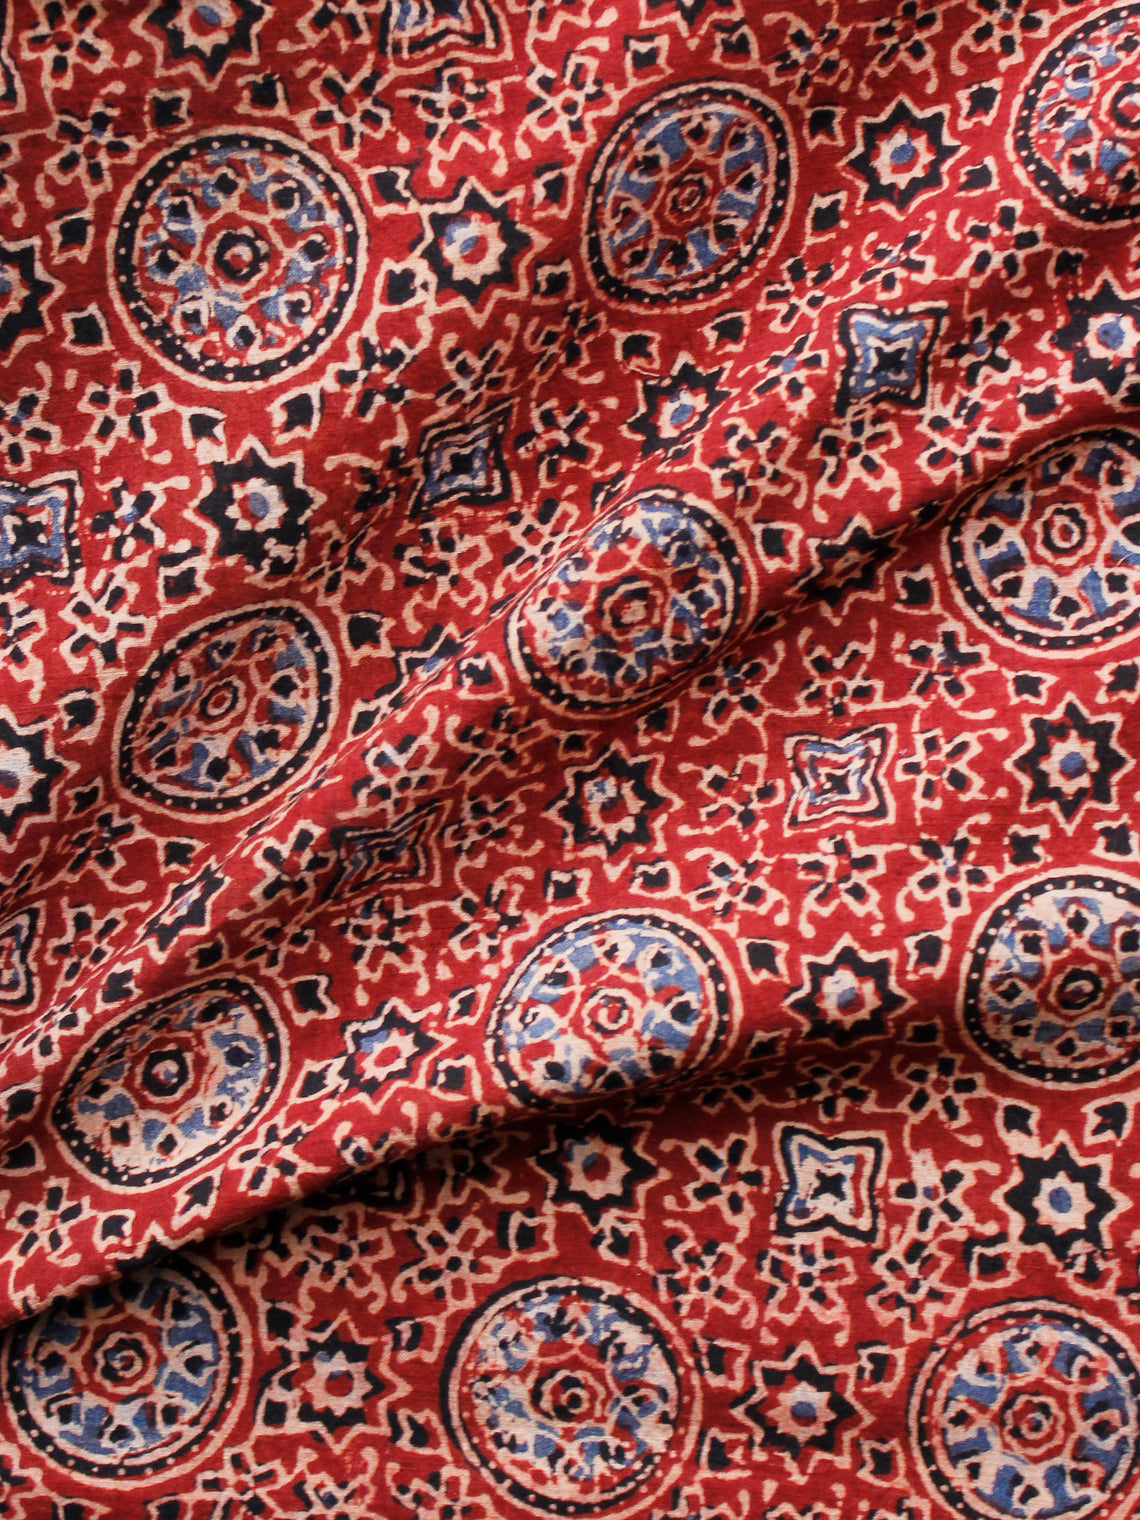 Red Black Blue Ivory Ajrakh Hand Block Printed Cotton Fabric Per Meter - F003F1683